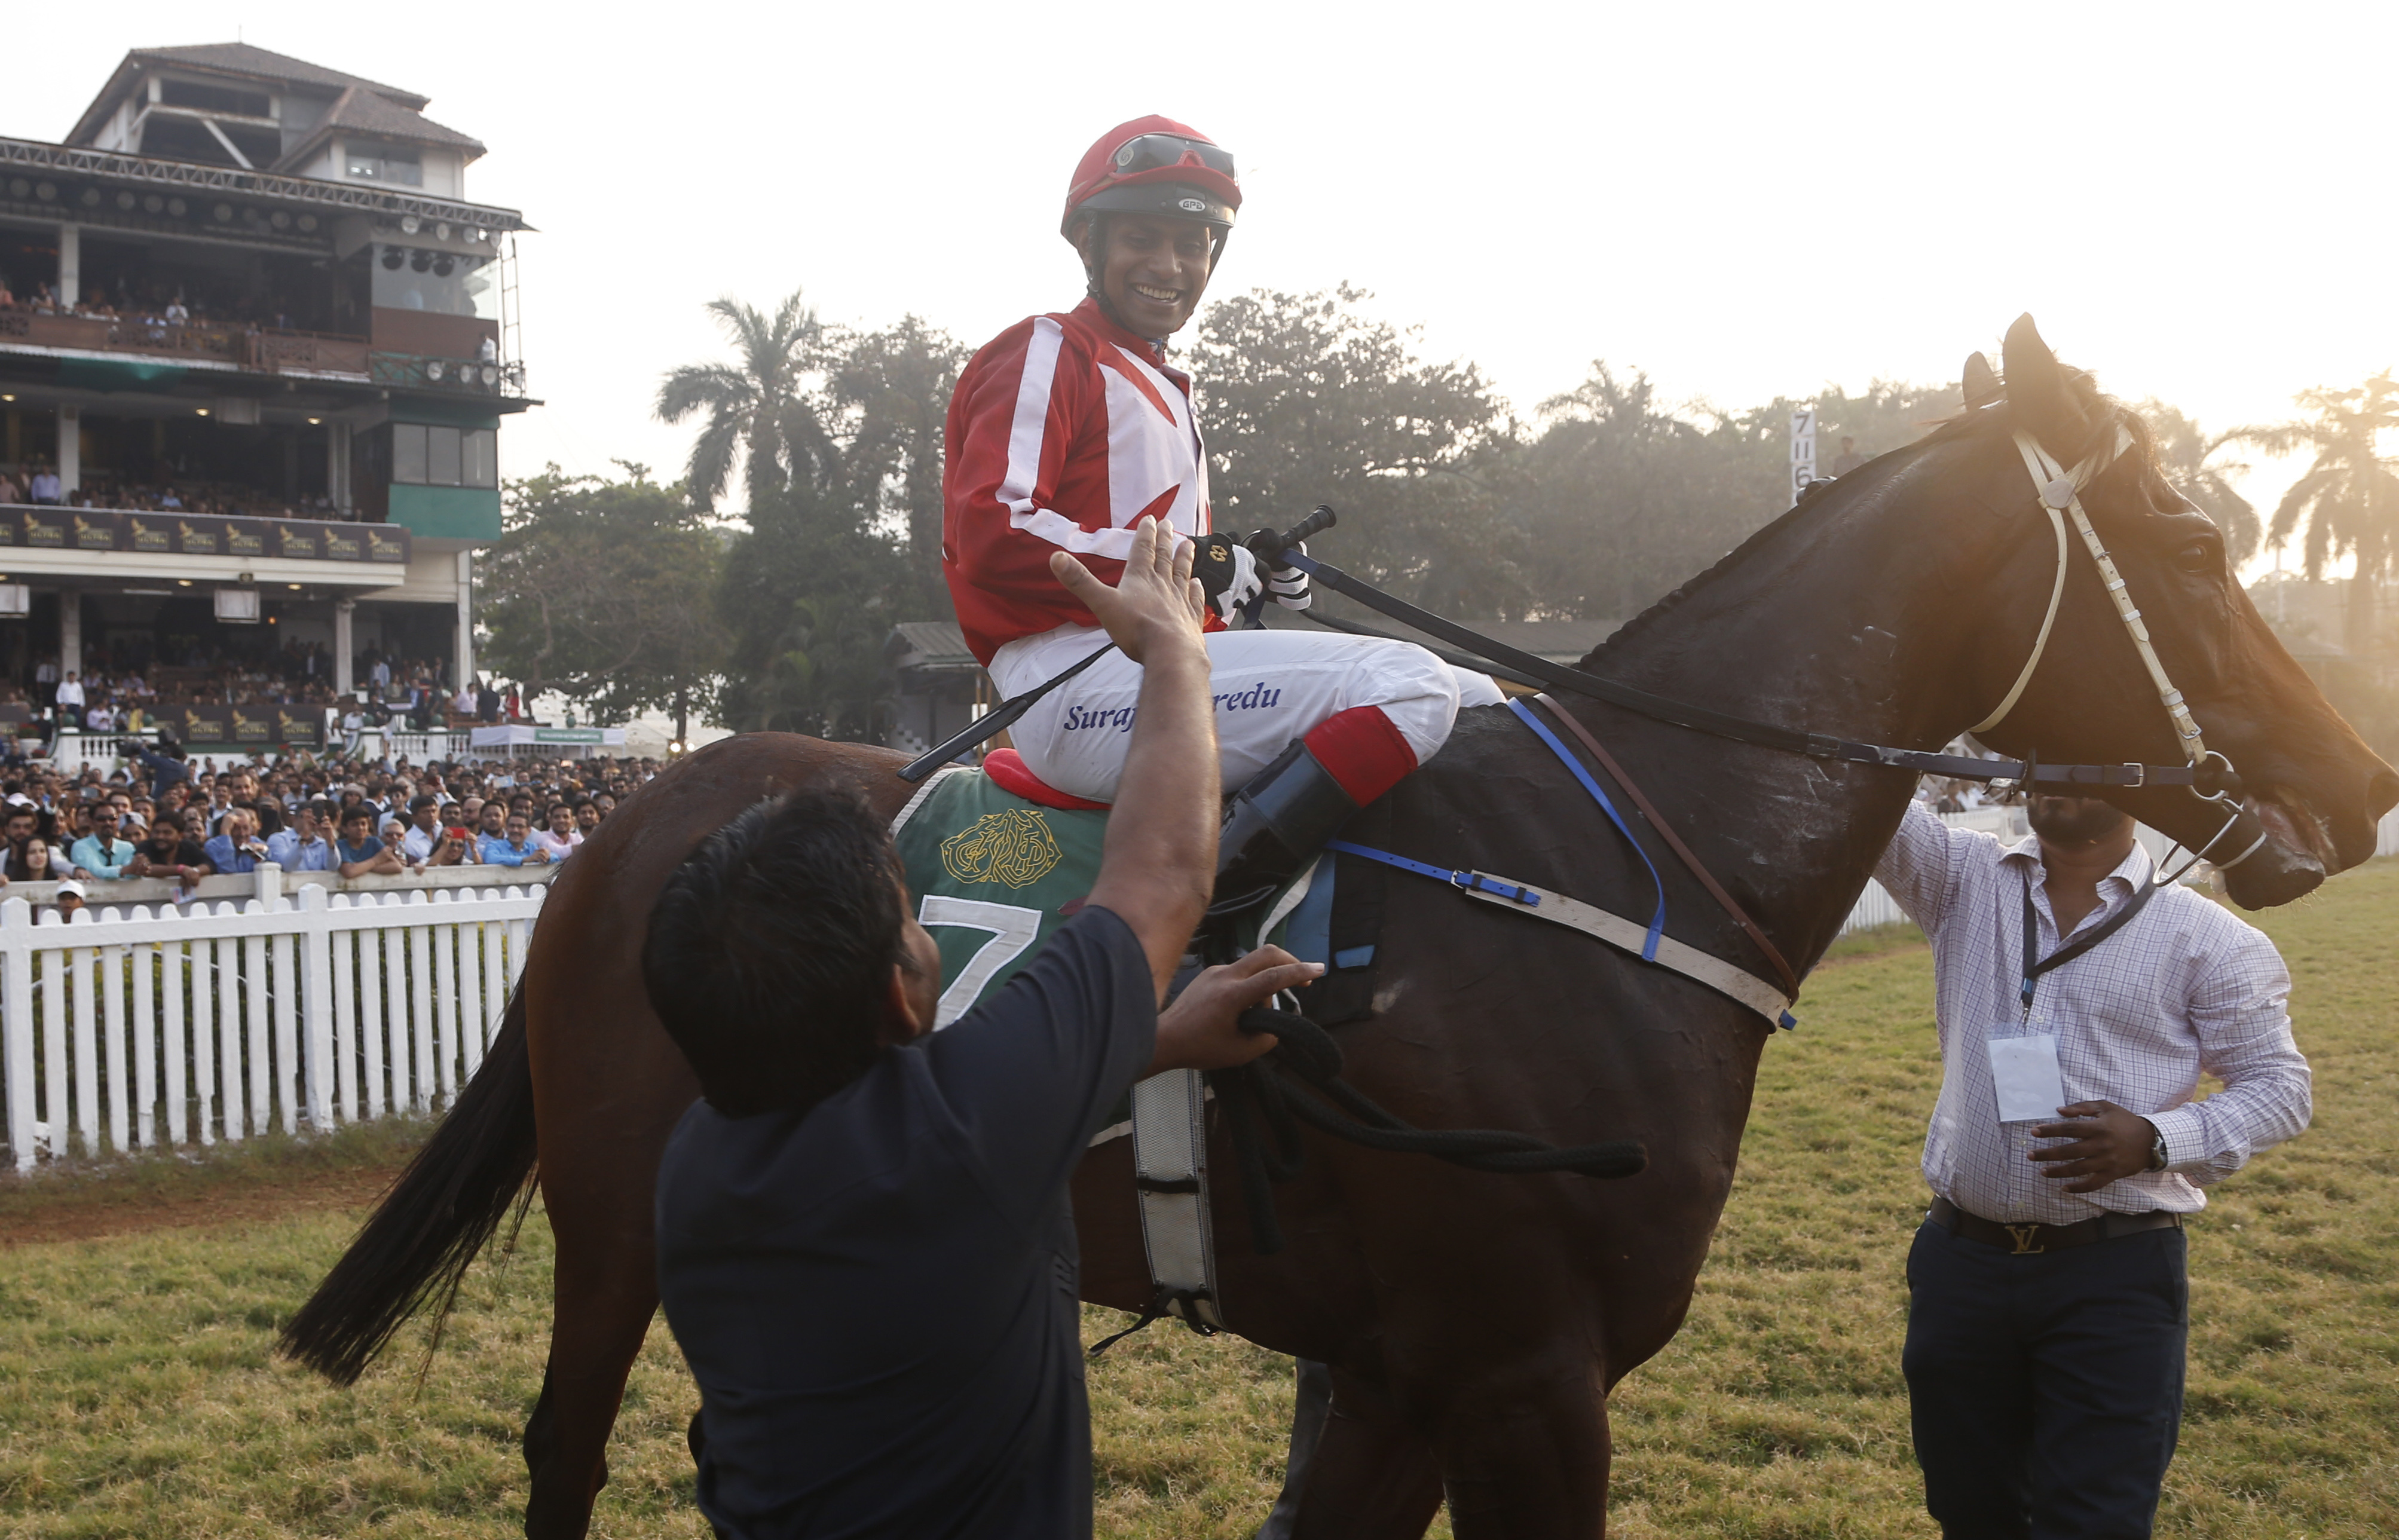 Jockey Suraj Narredu, is greeted after he won the Indian Derby 2019 at the Mahalaxmi race course in Mumbai - AP